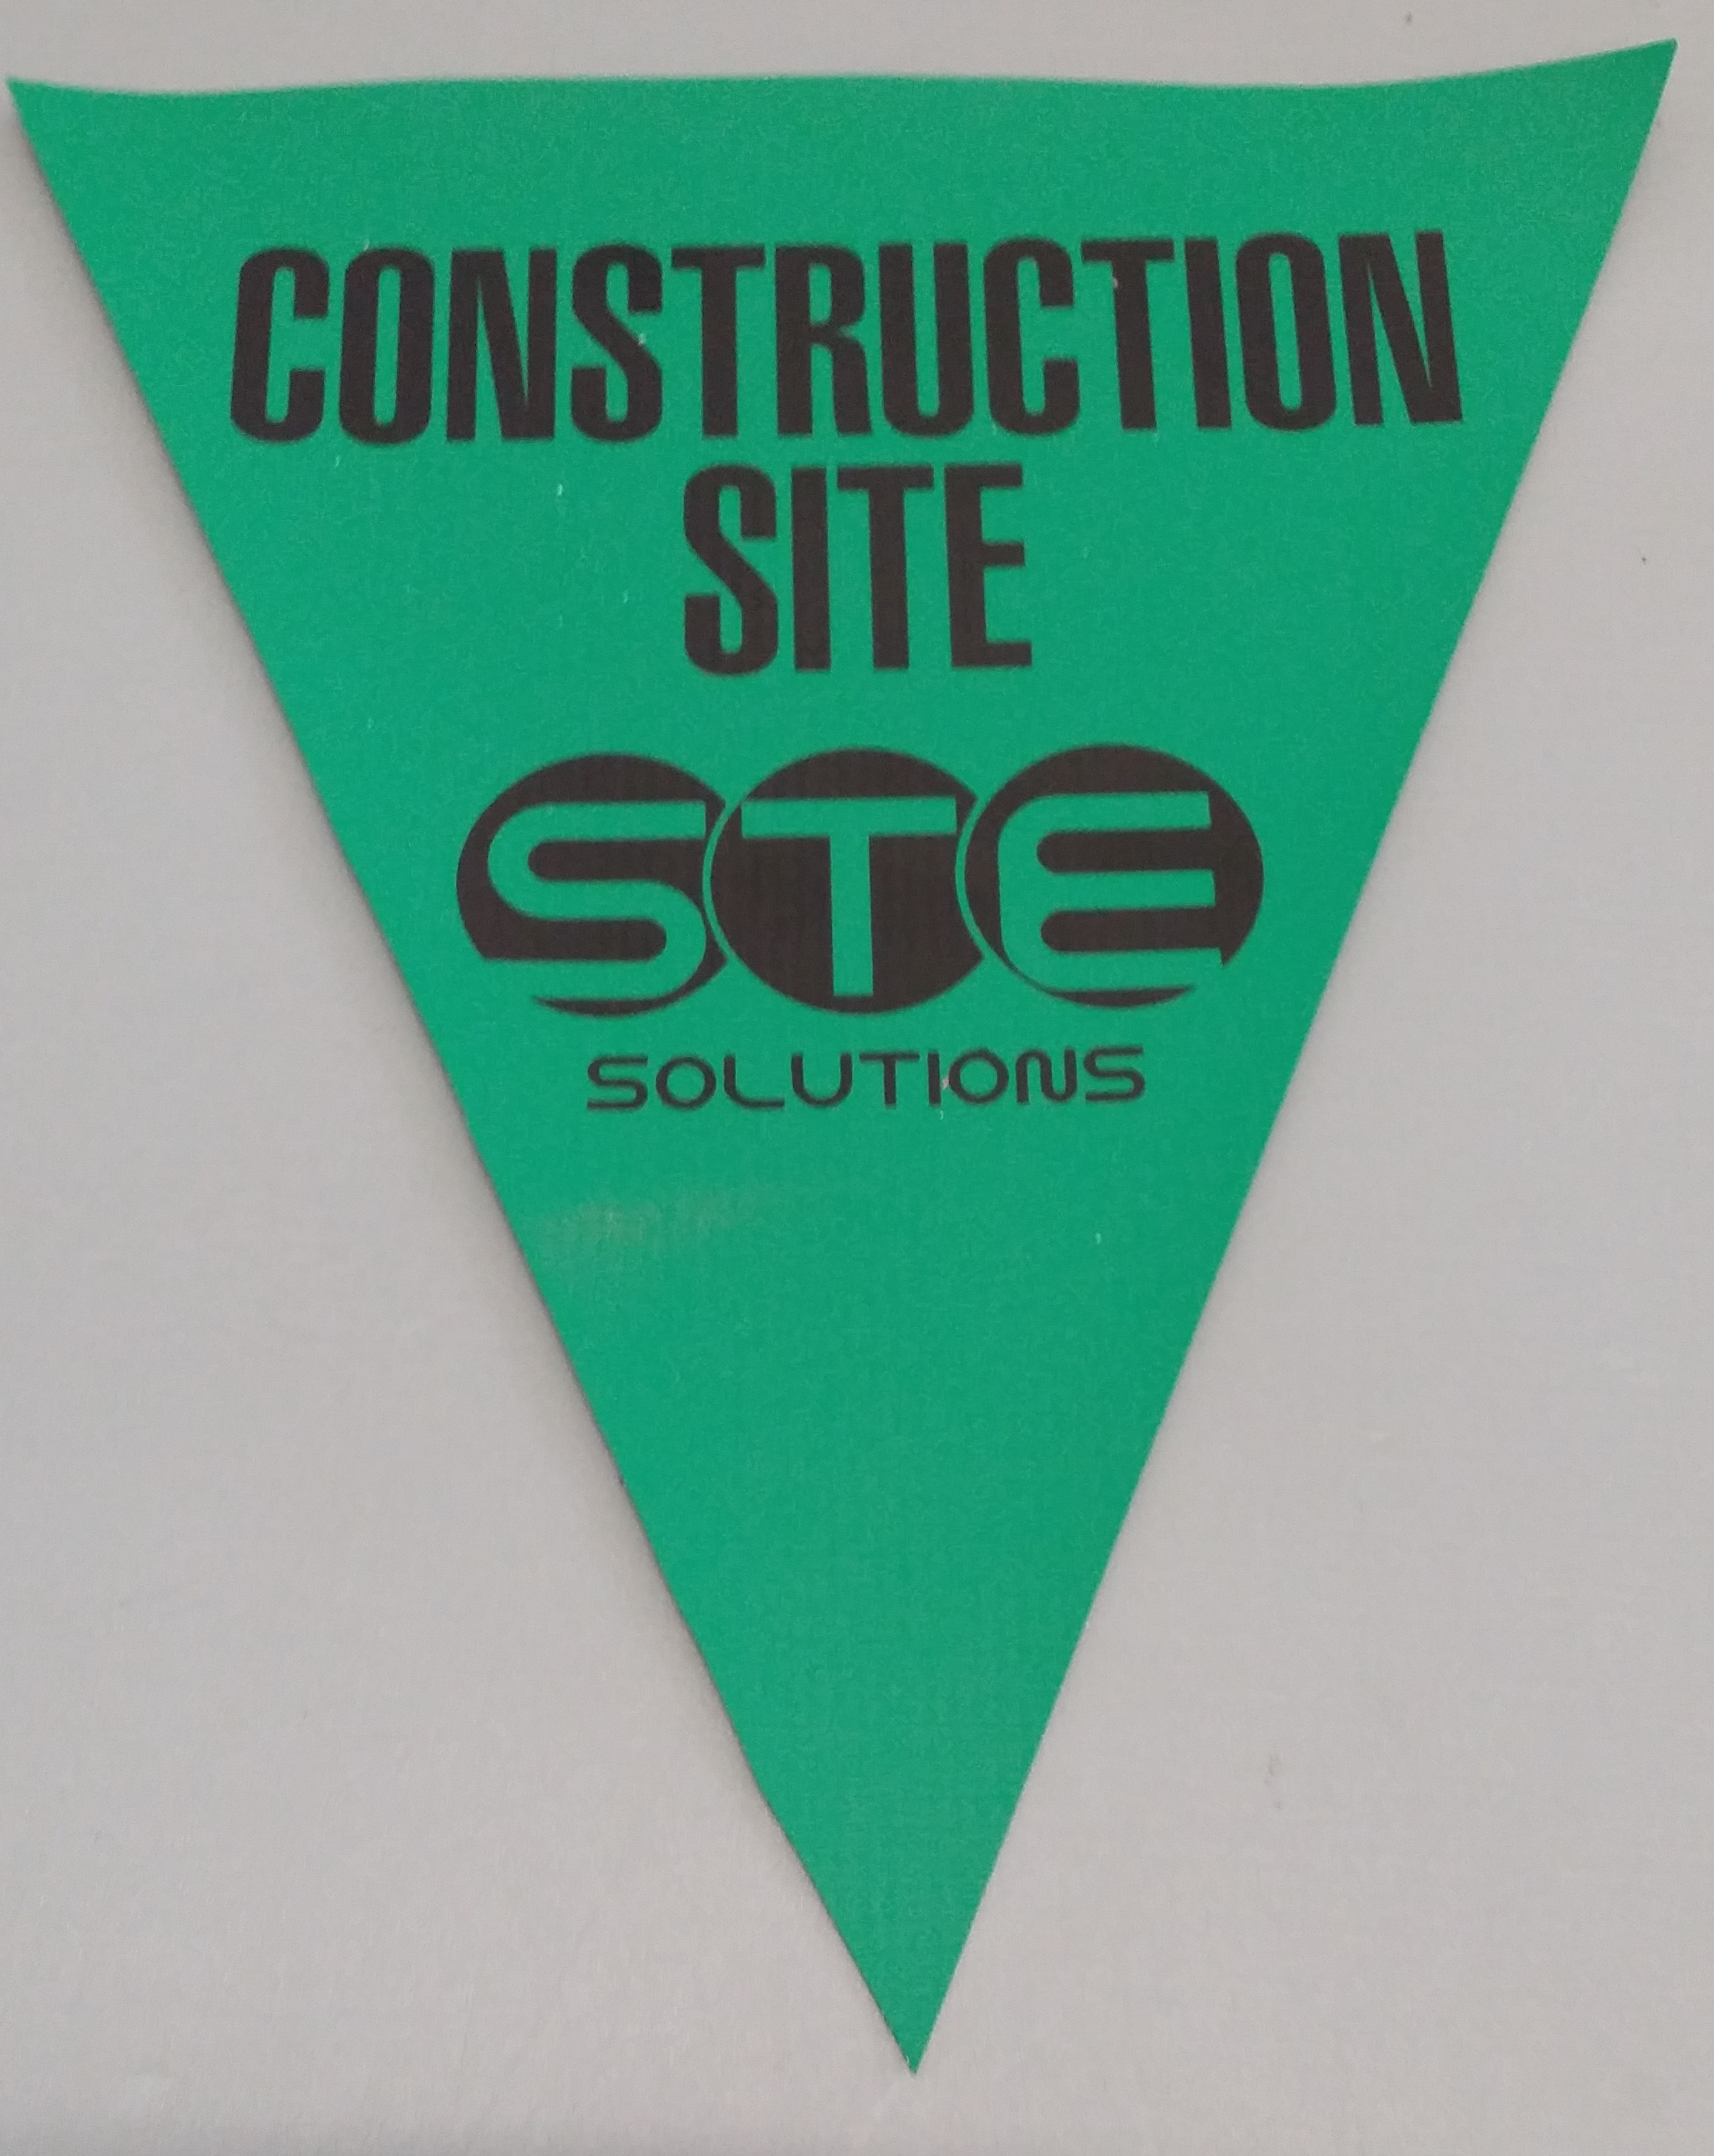 Construction Site STE Solutions (green)